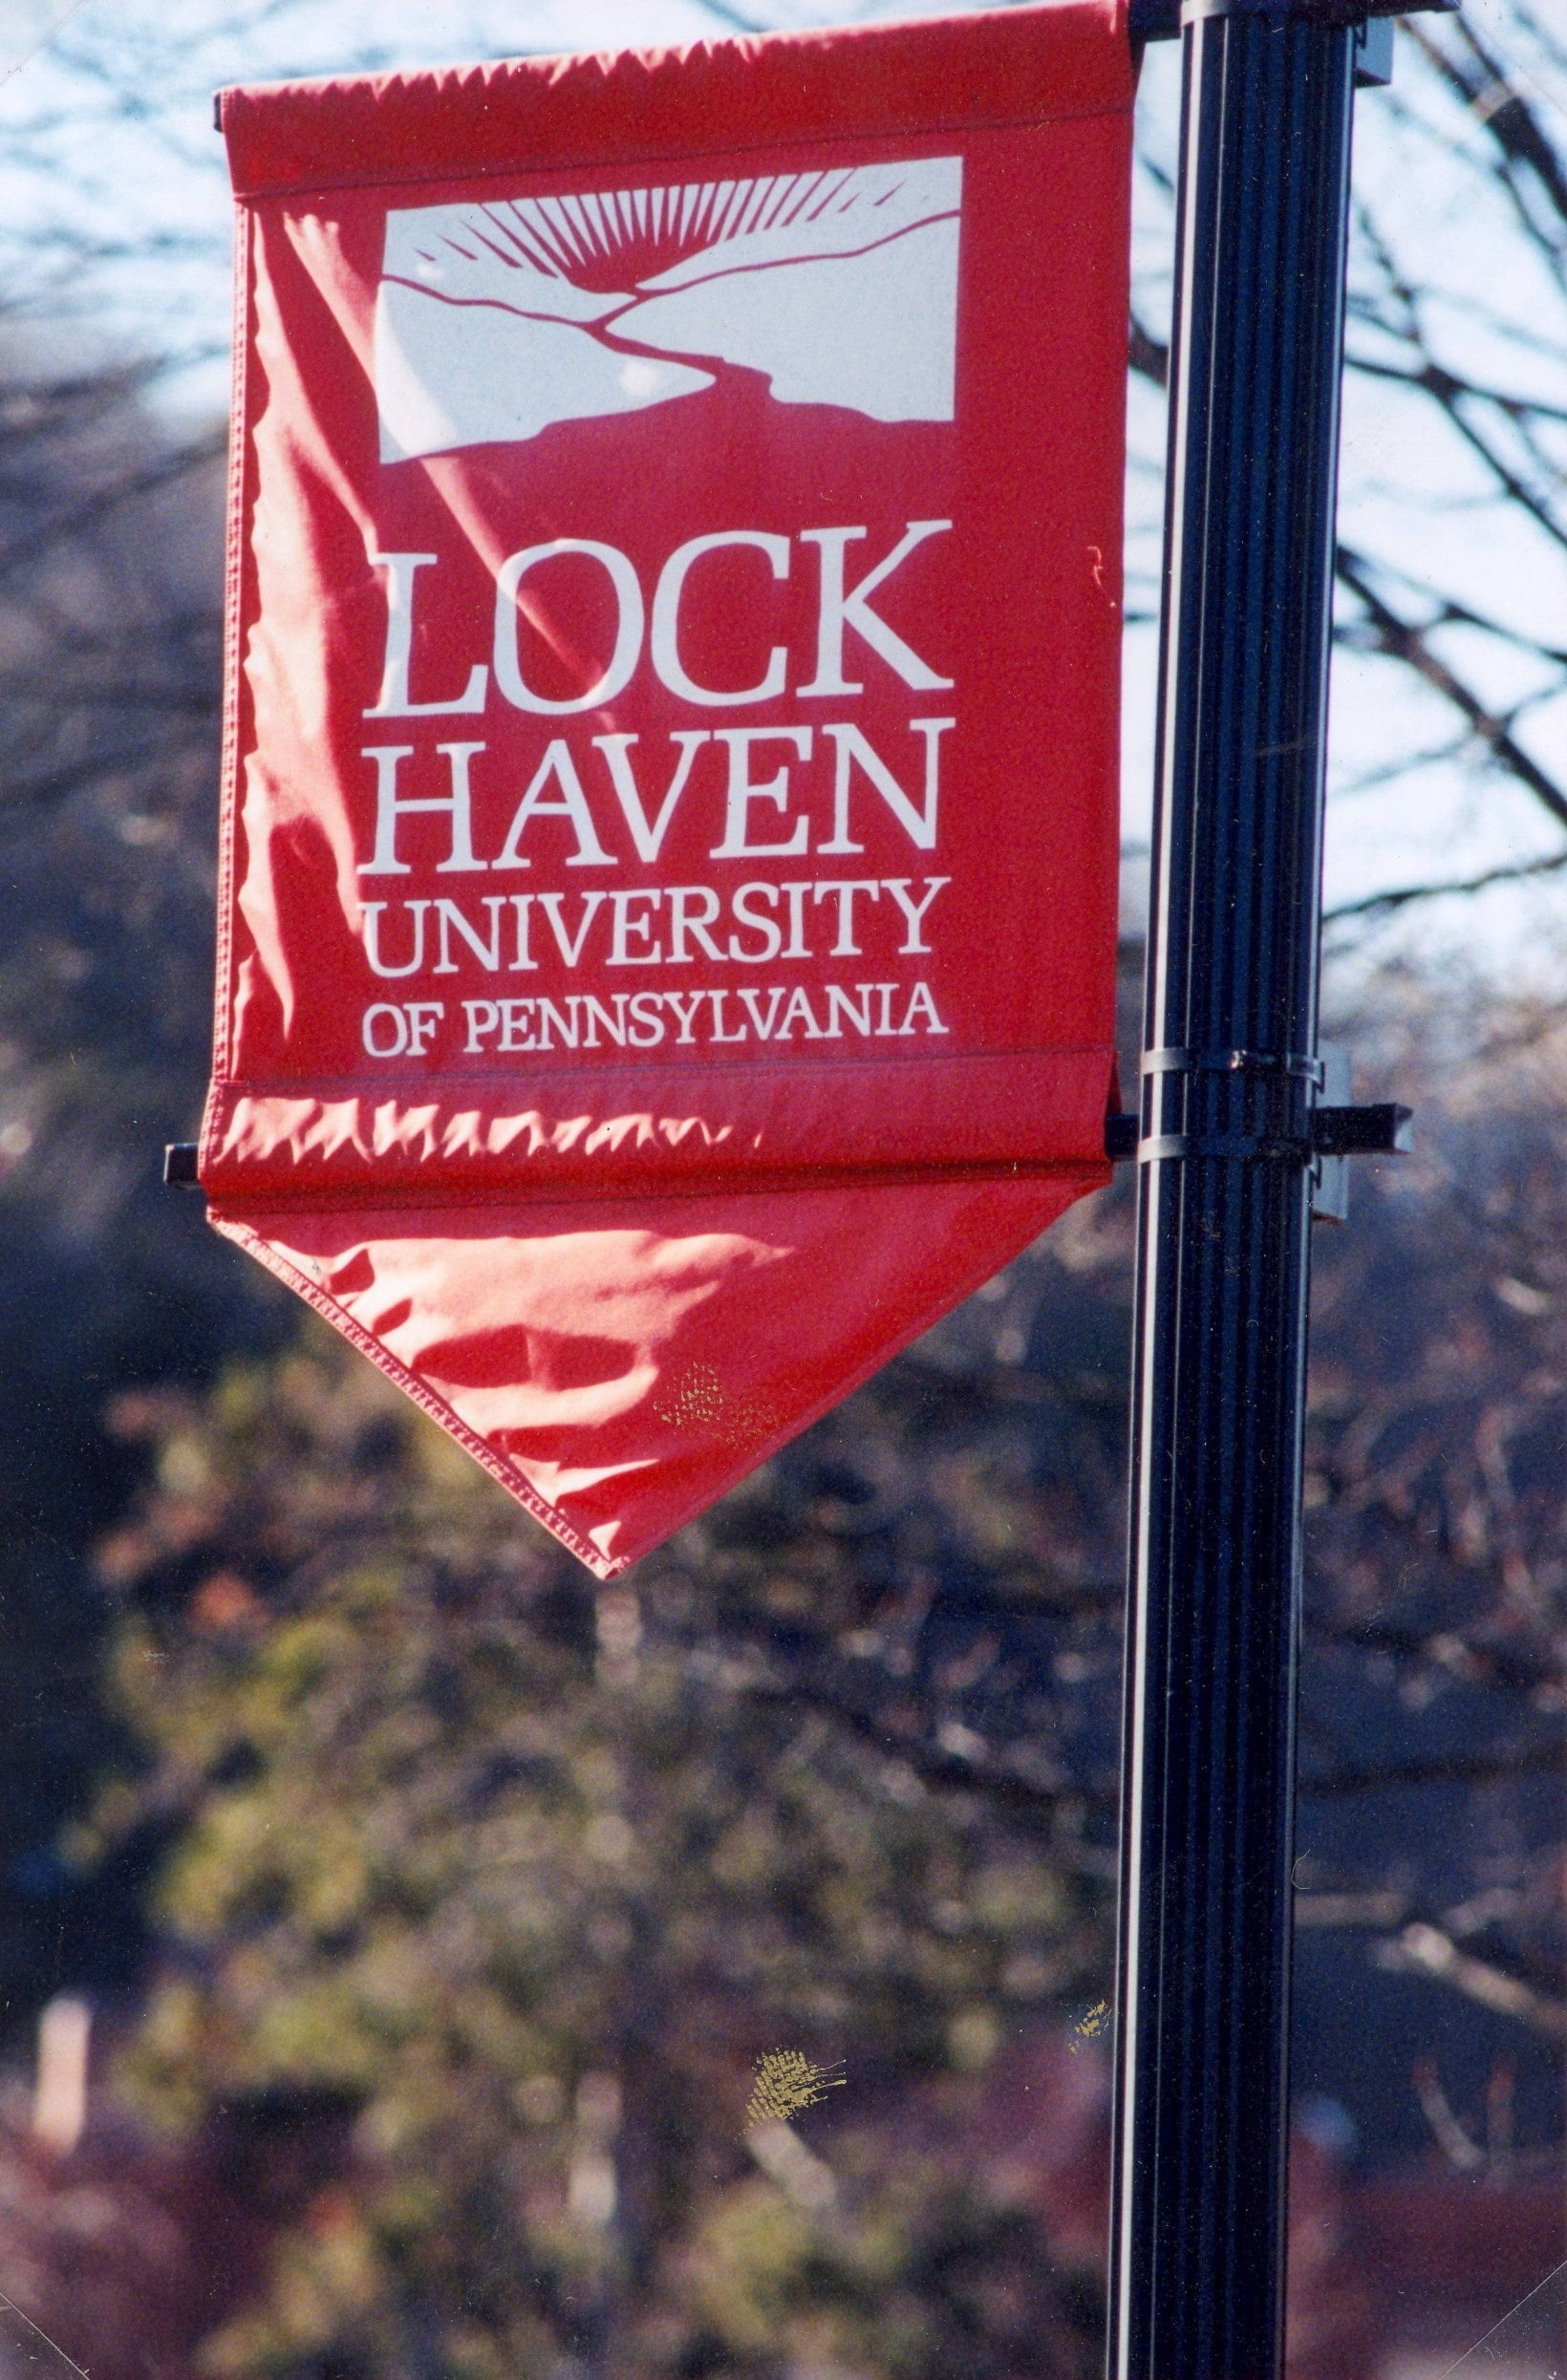 Lock Haven University of Pennsylvania